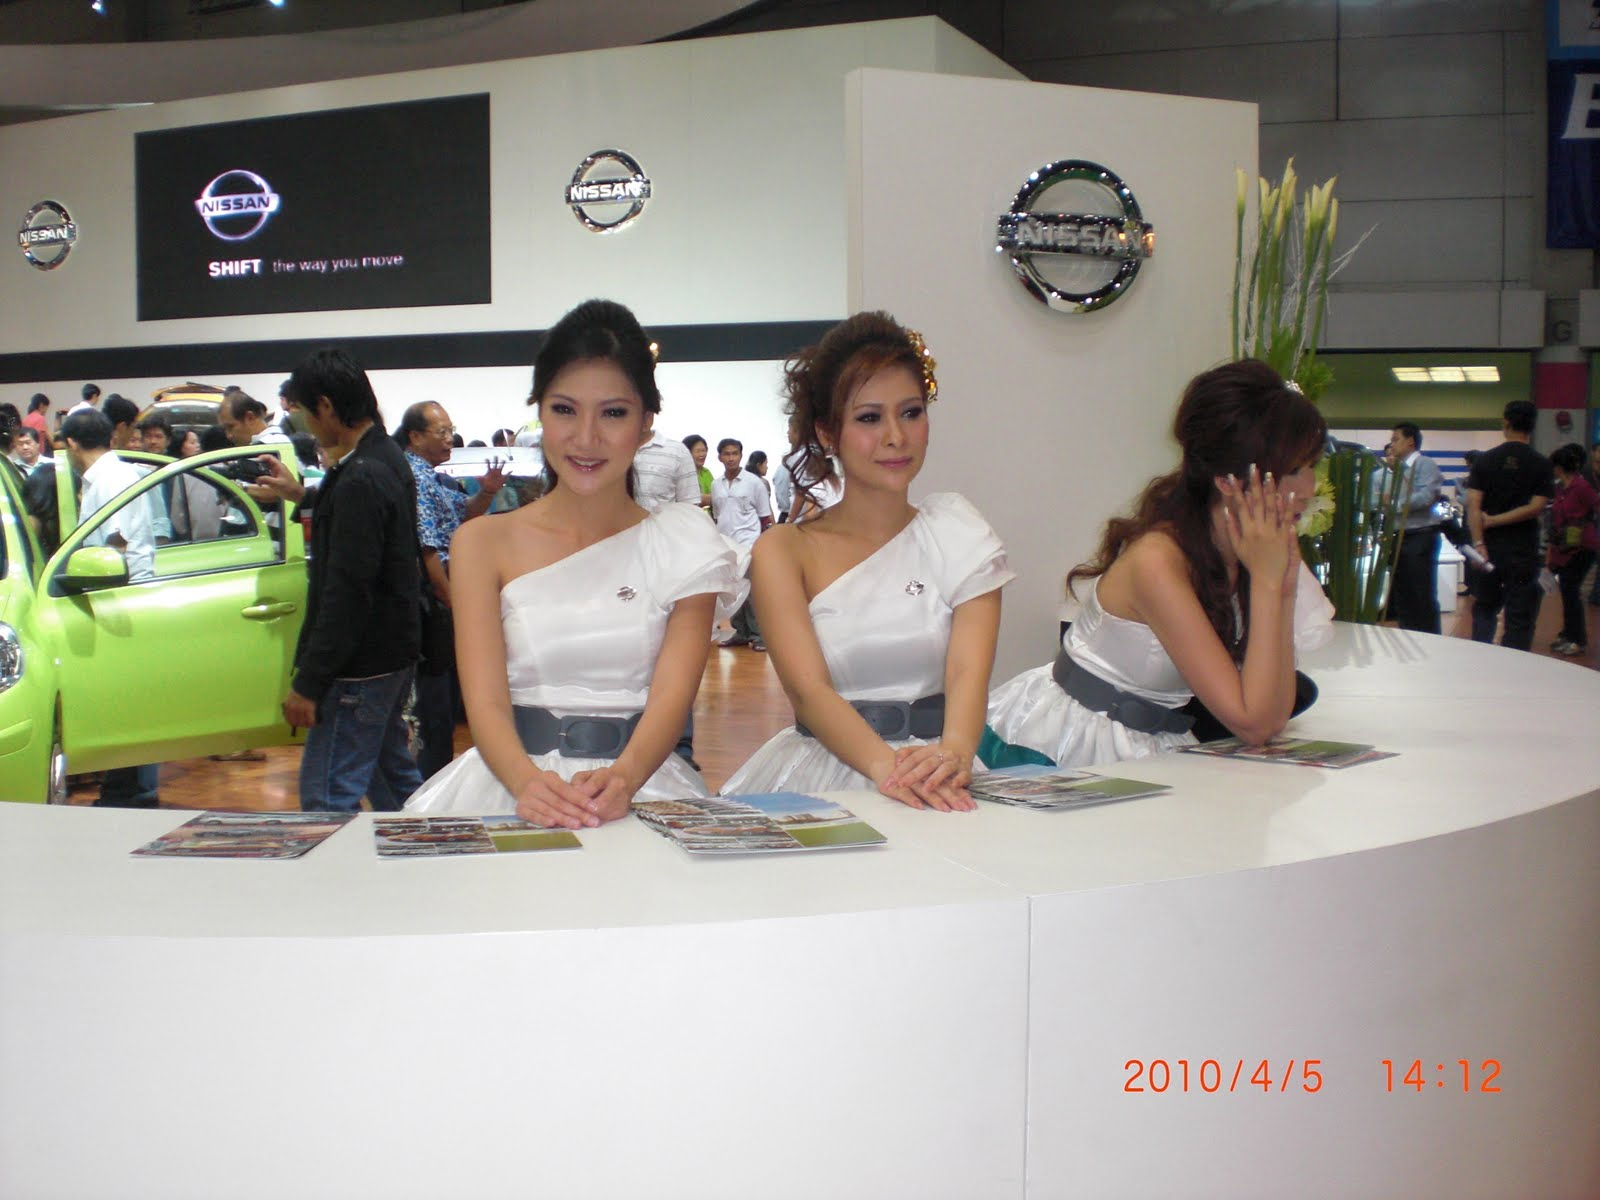 Nissan girls are a bit staid